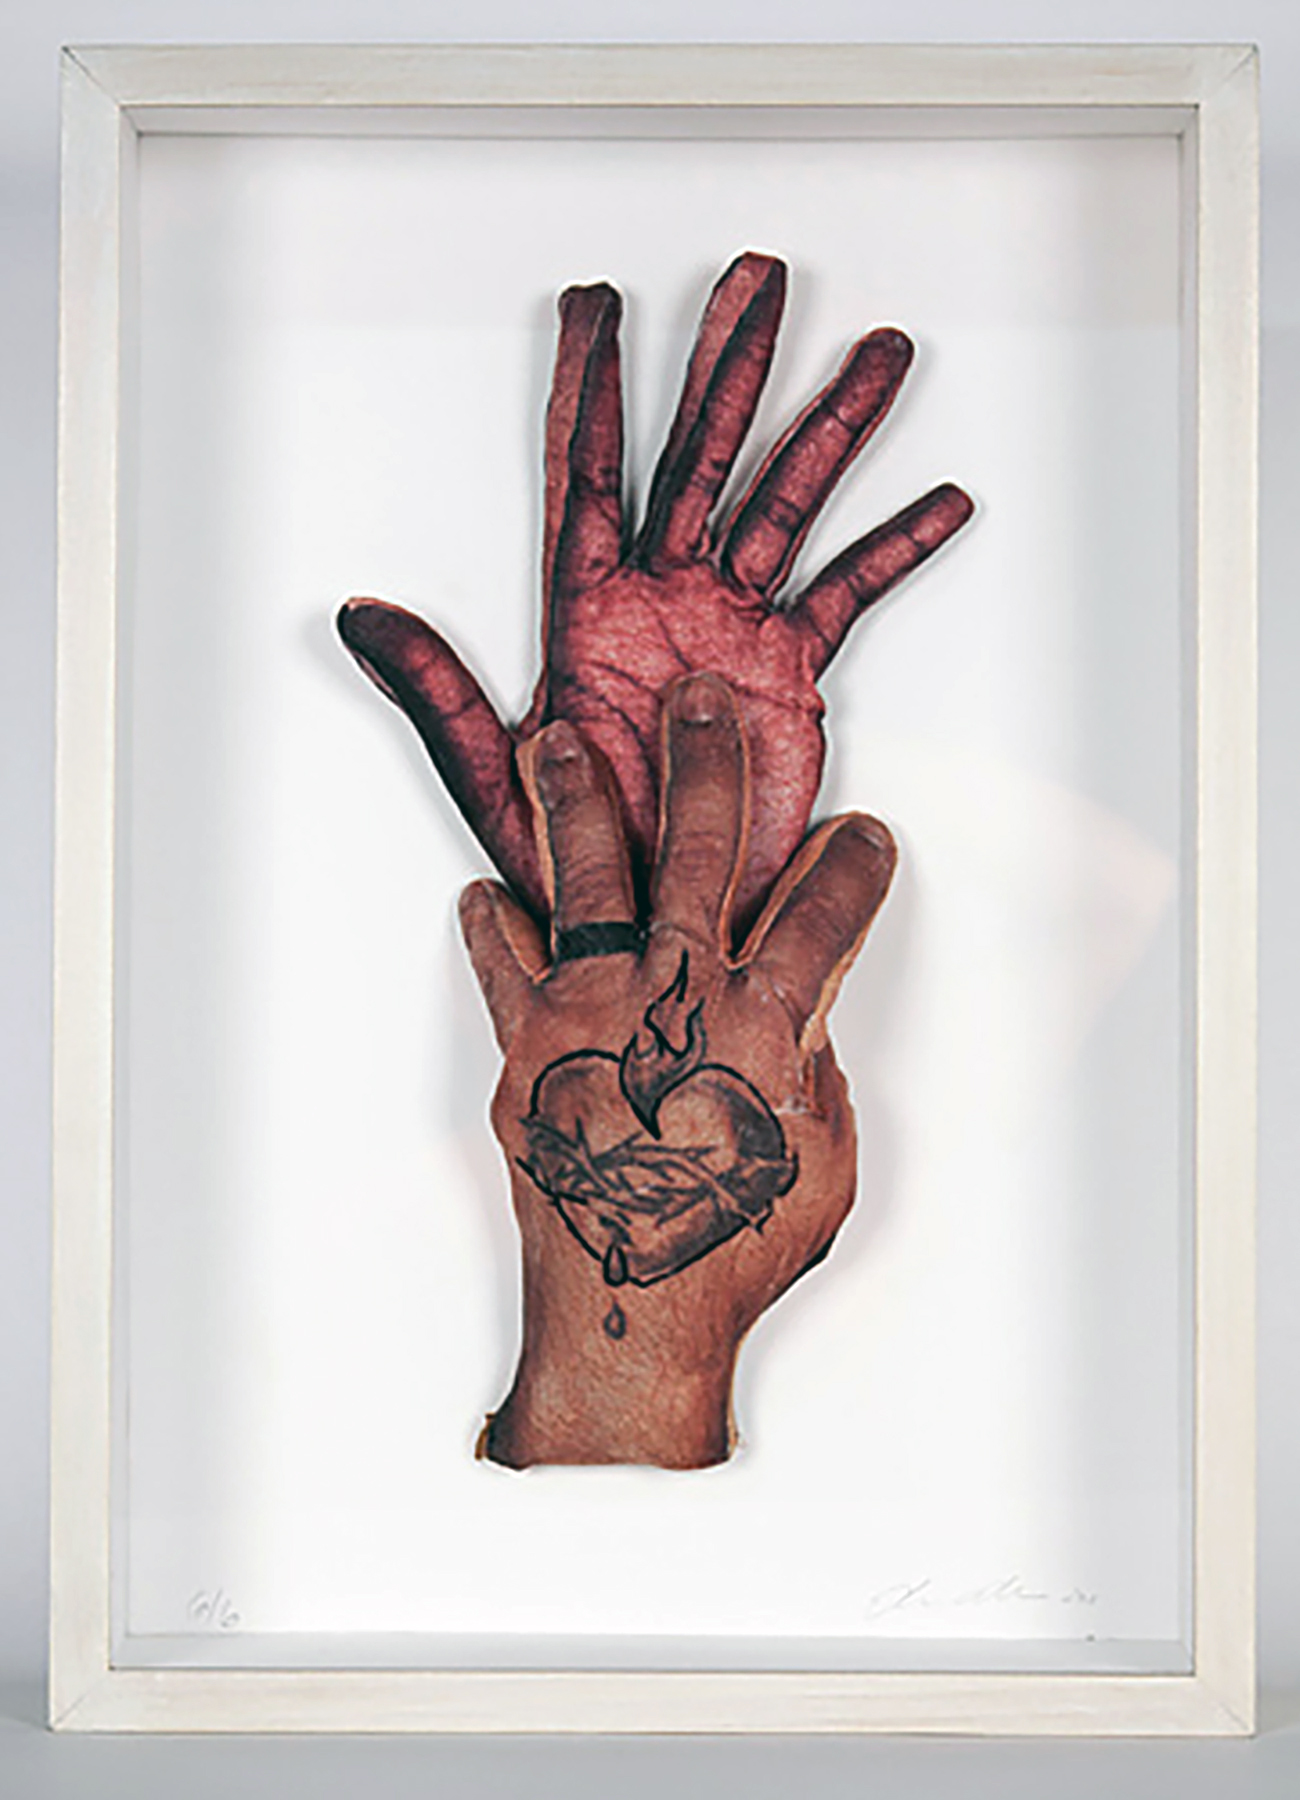 Elia Alba,  Hands (Sacred Heart 1) , 2013. Silk screen on fabric, wire, fiberfil, acrylic and thread.